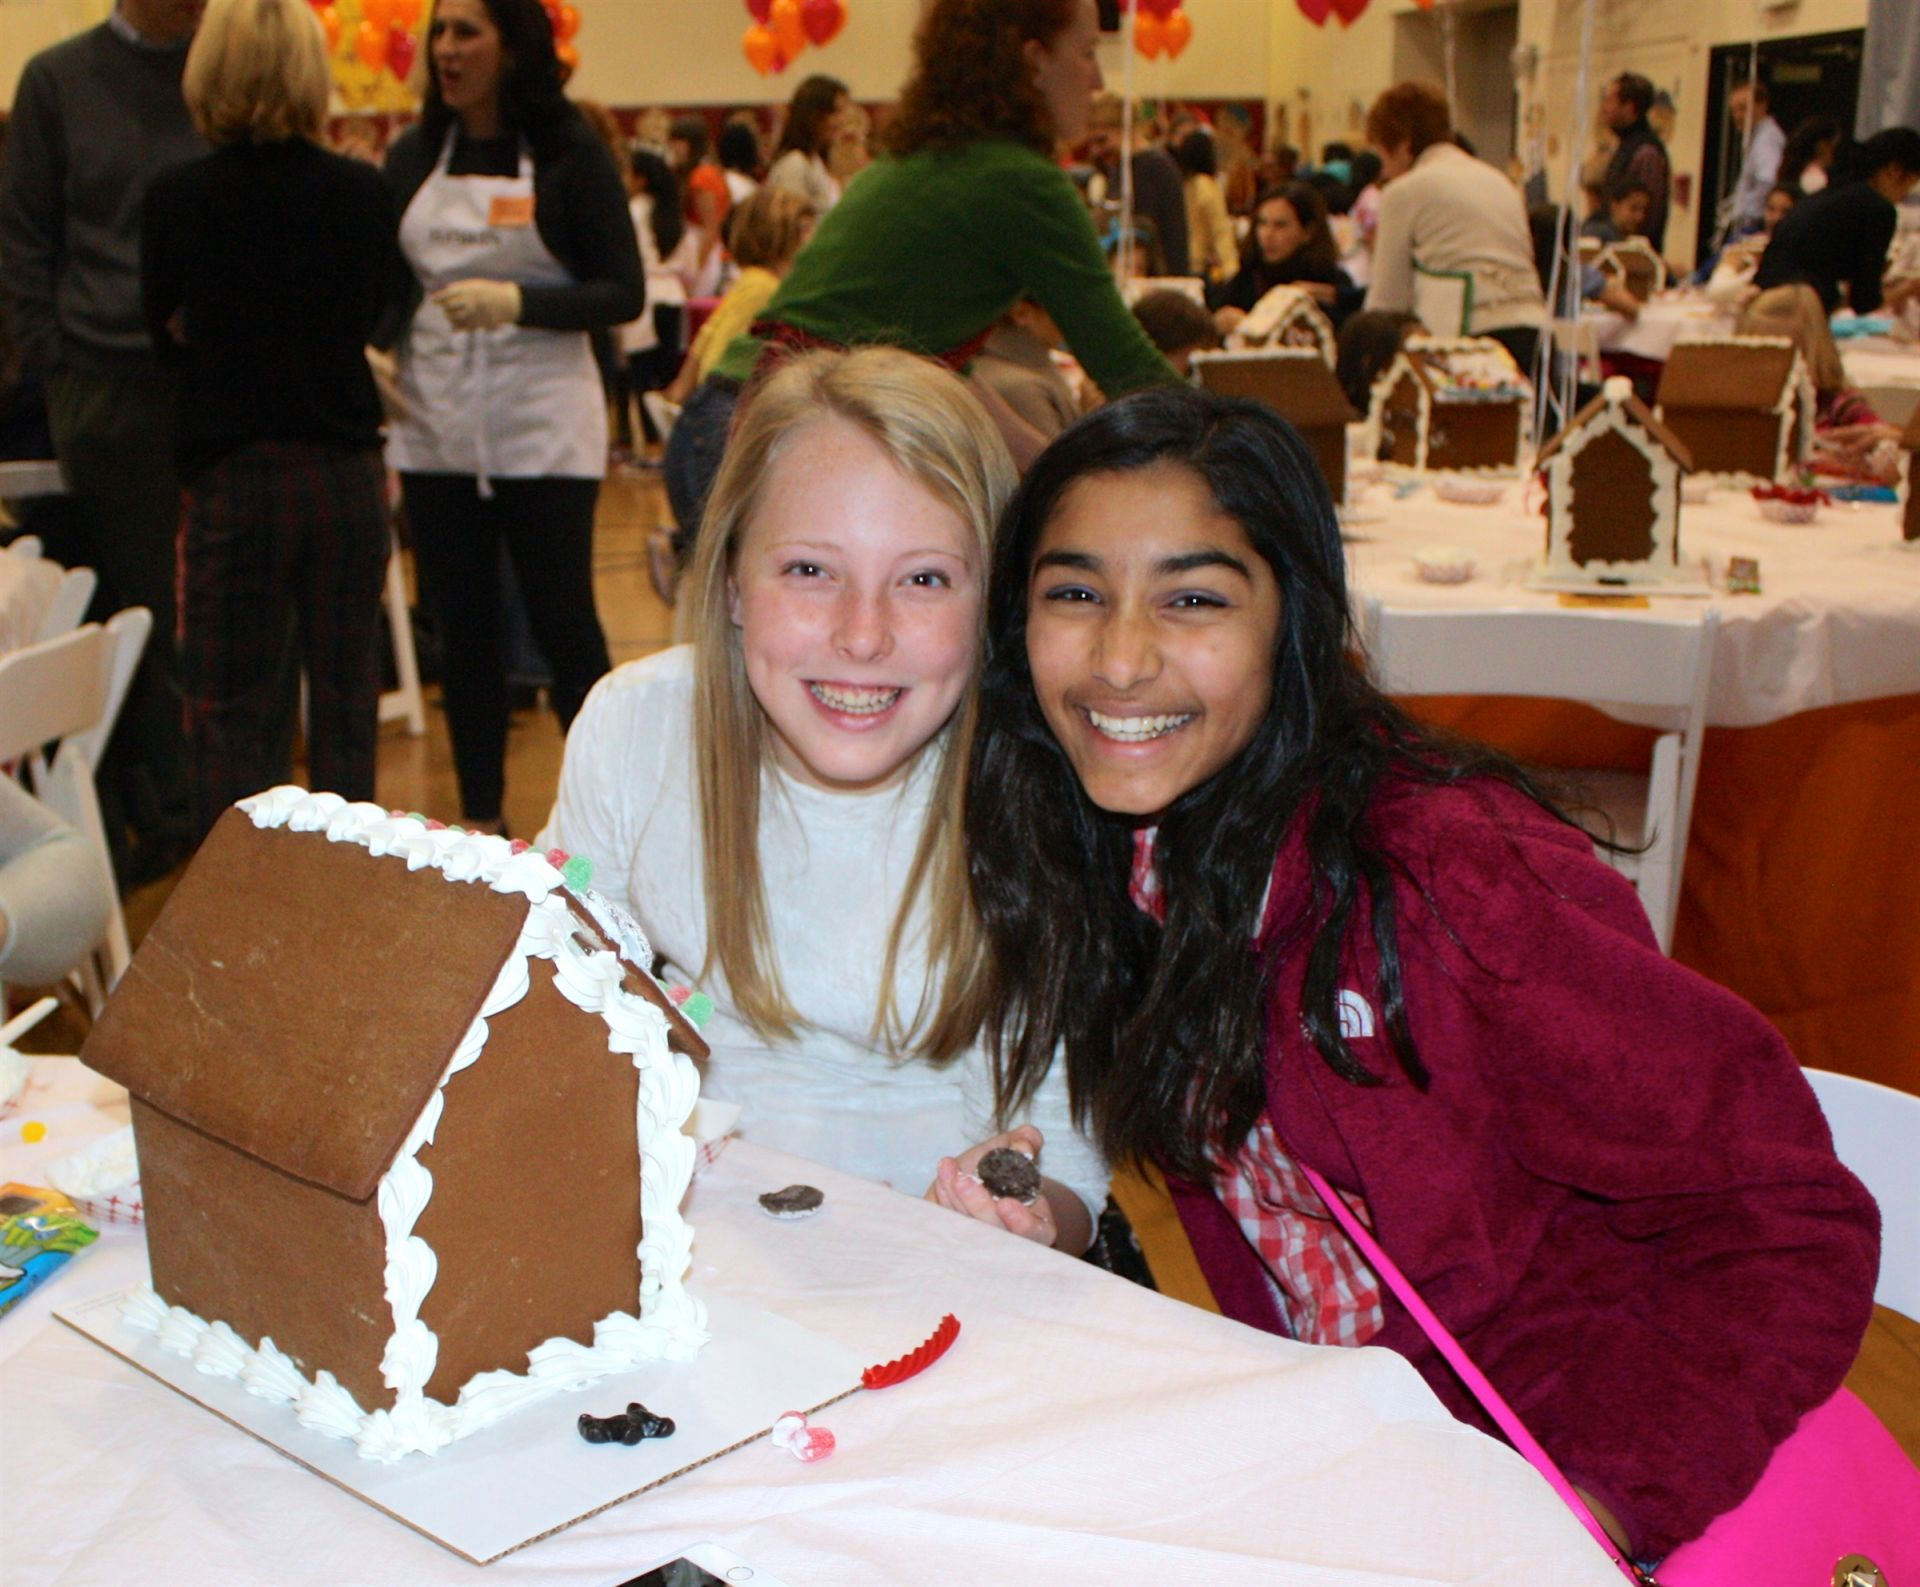 Winterfest - Gingerbread